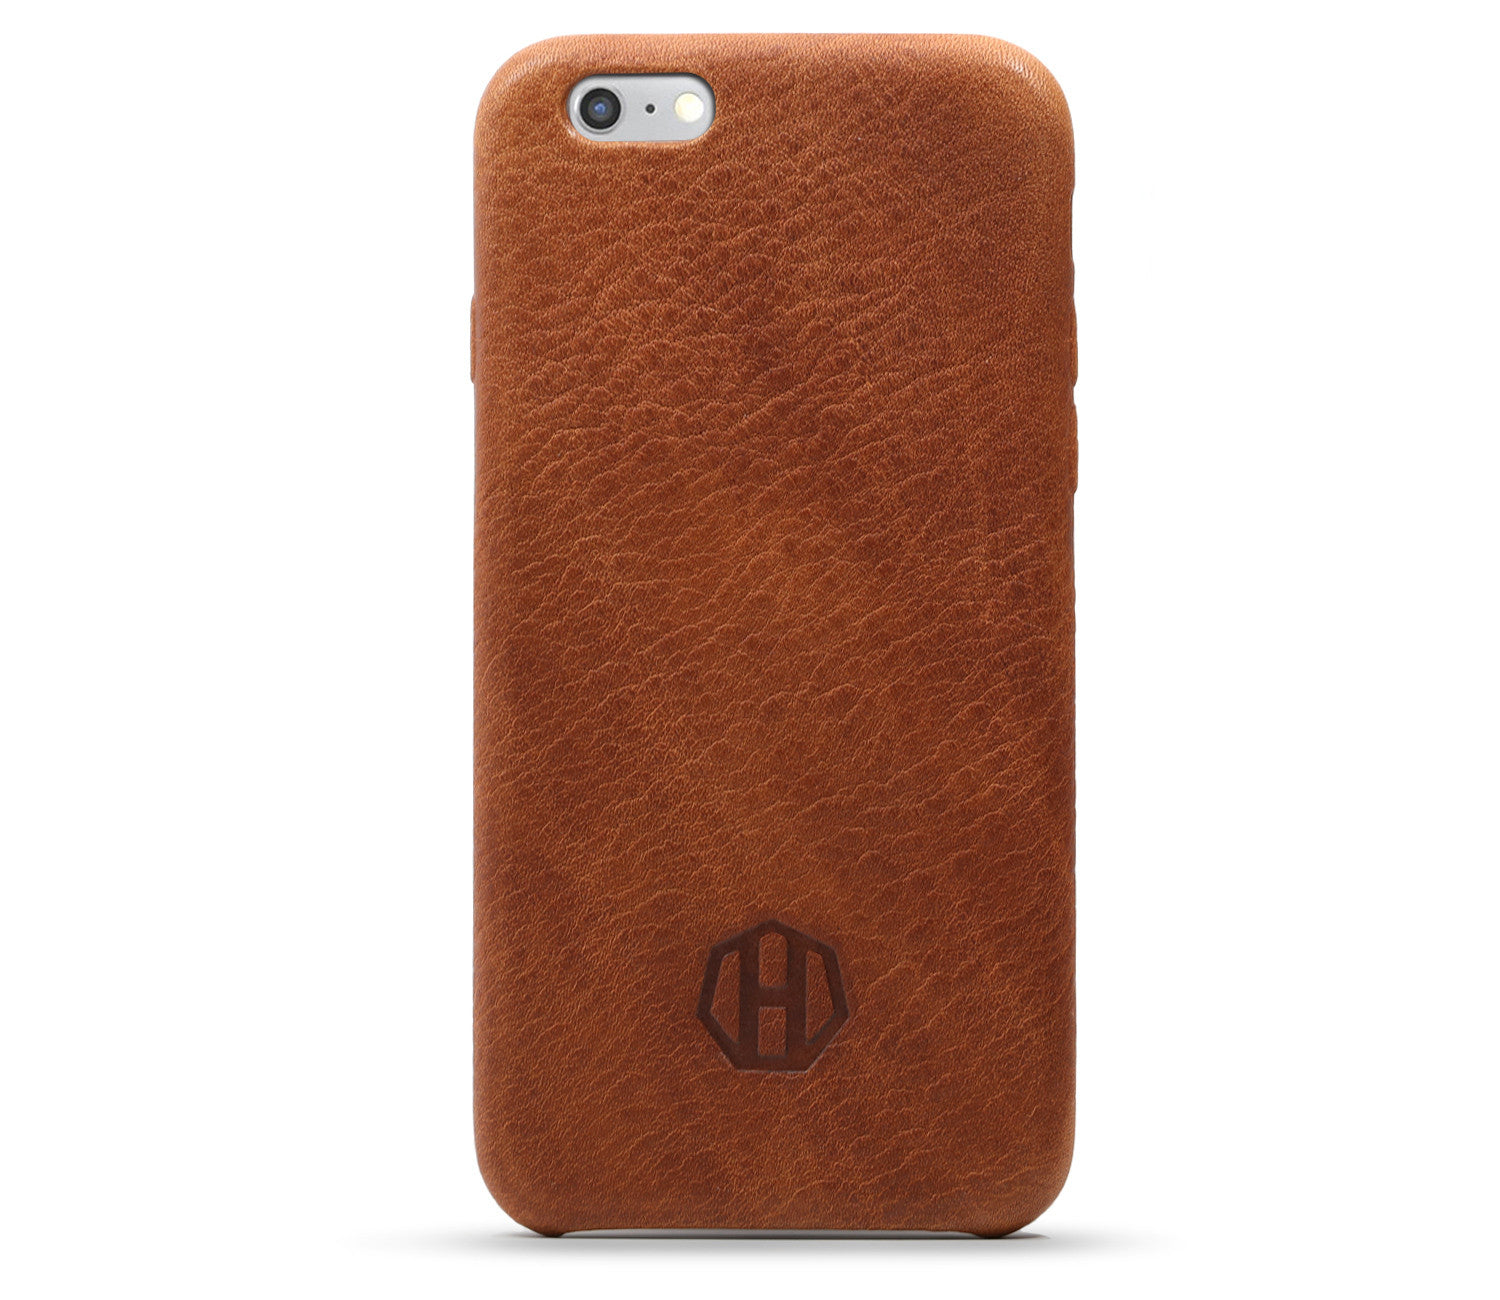 iphone 6 cases leather